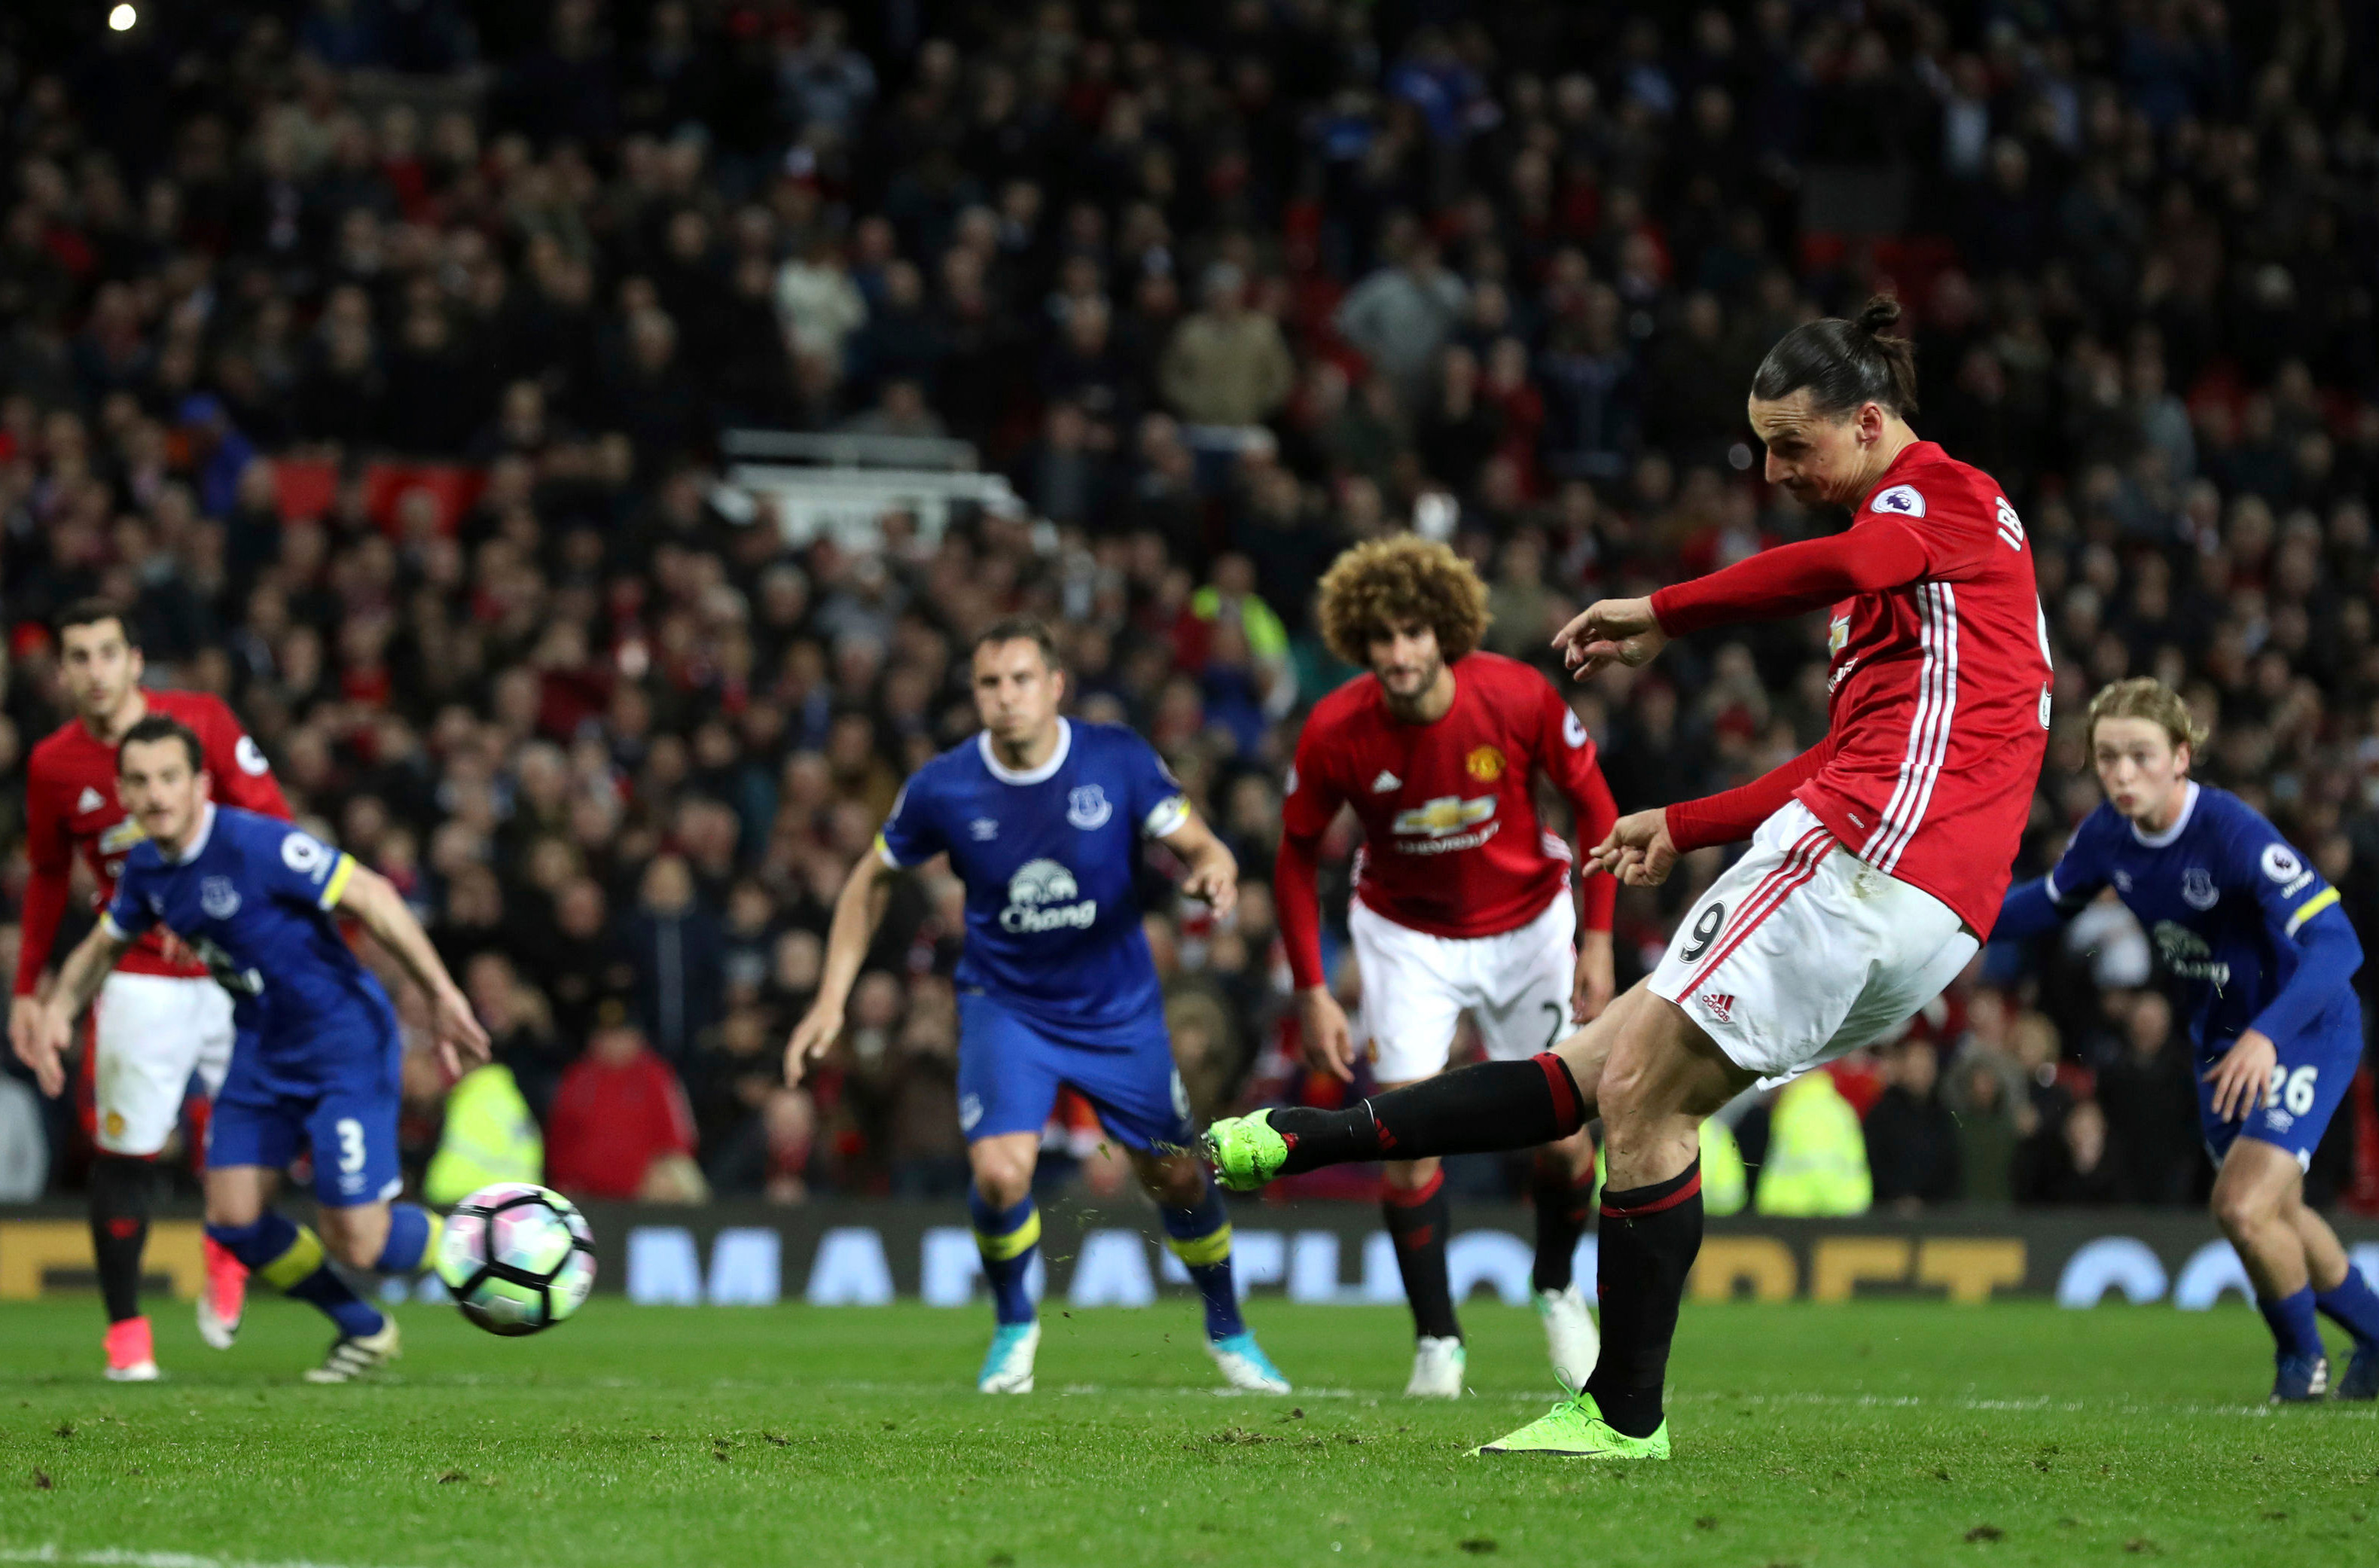 Manchester United's Zlatan Ibrahimovic scores from the penalty spot against Everton during their English Premier League match at Old Trafford in Manchester, Tuesday April 4. (Martin Rickett/PA via AP)